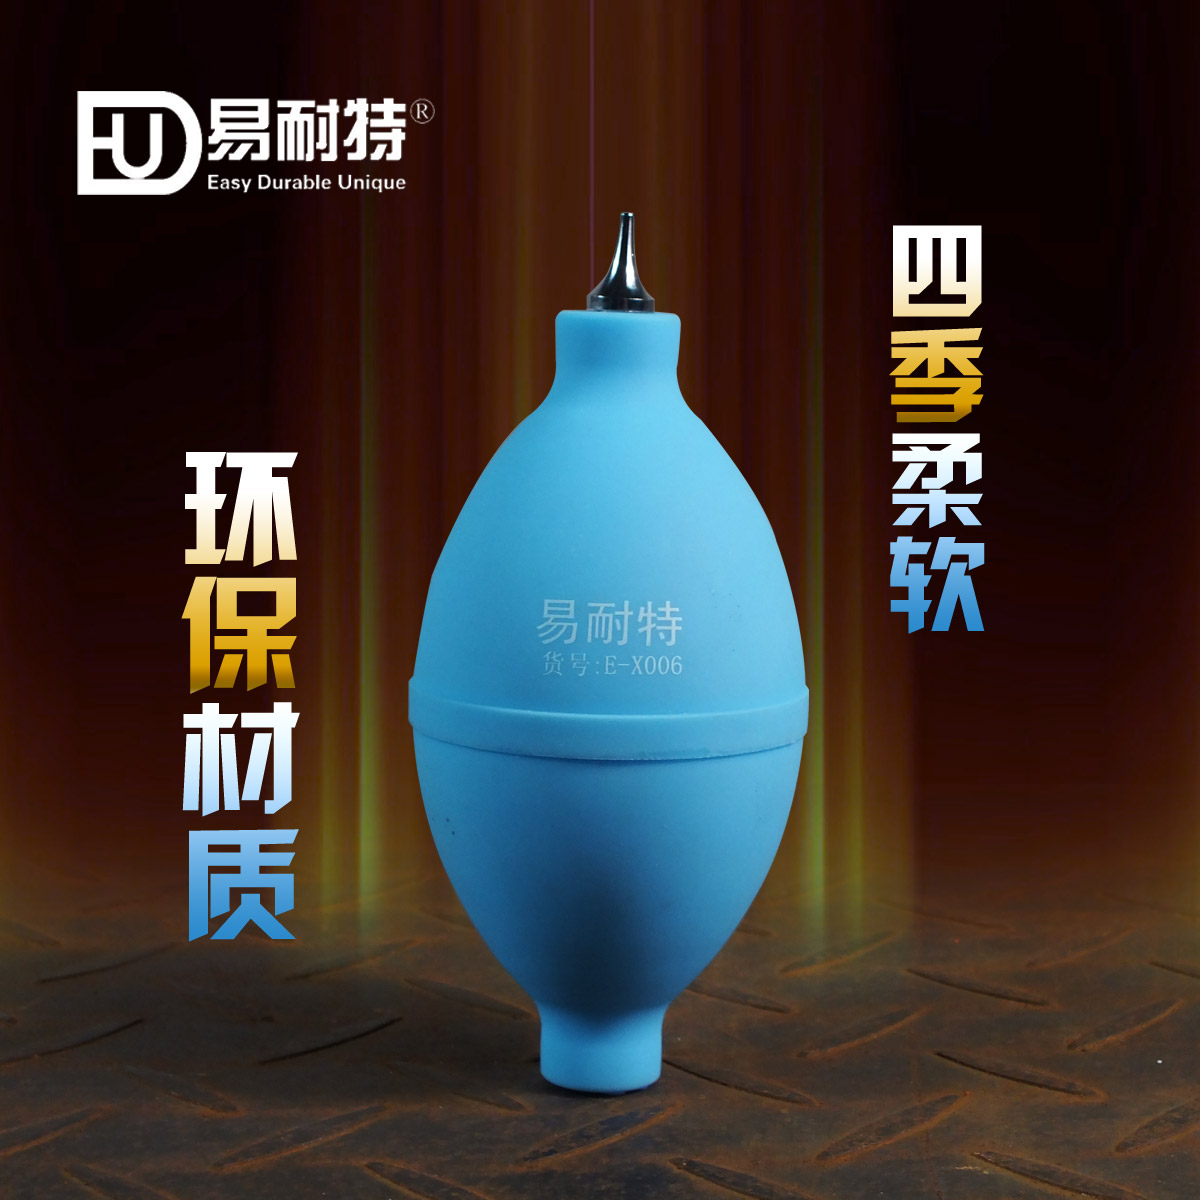 Computer Digital Cameras balloon blowing dust ball tiger cleaning tool construction dust blower Promotions(China (Mainland))